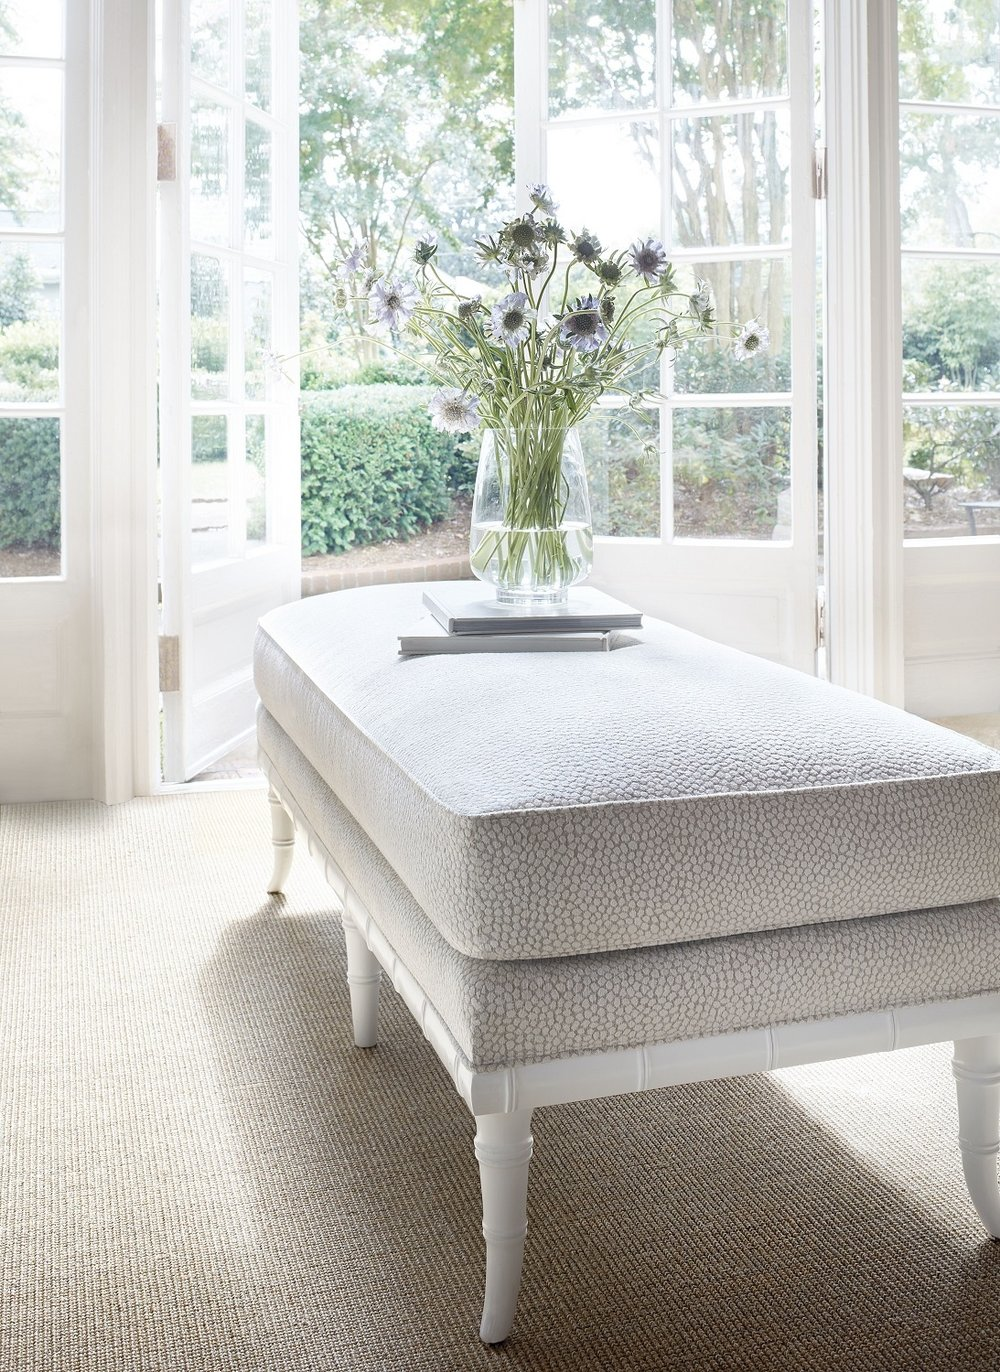 Devon bench covered in Kali woven fabric from Thibaut's mosaic collection. Crypton Fabric is stain and odor resistant. Photo: courtesy of Thibaut Design.